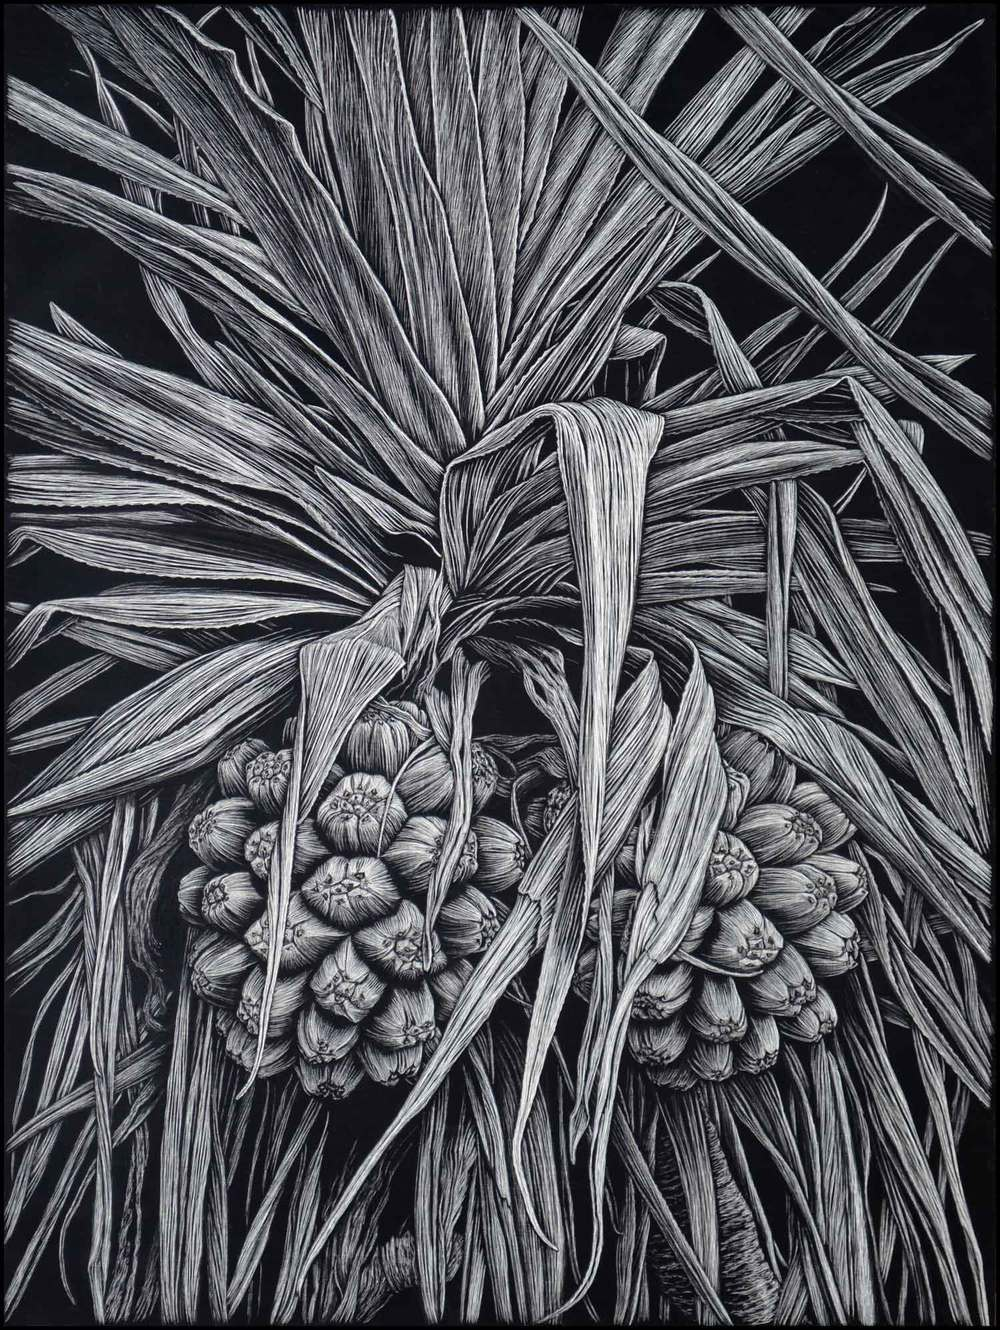 Pandanus Palm Beach  61 x 45.5 cm    Edition of 50  PIGMENT ON COTTON RAG PAPER  $1,100